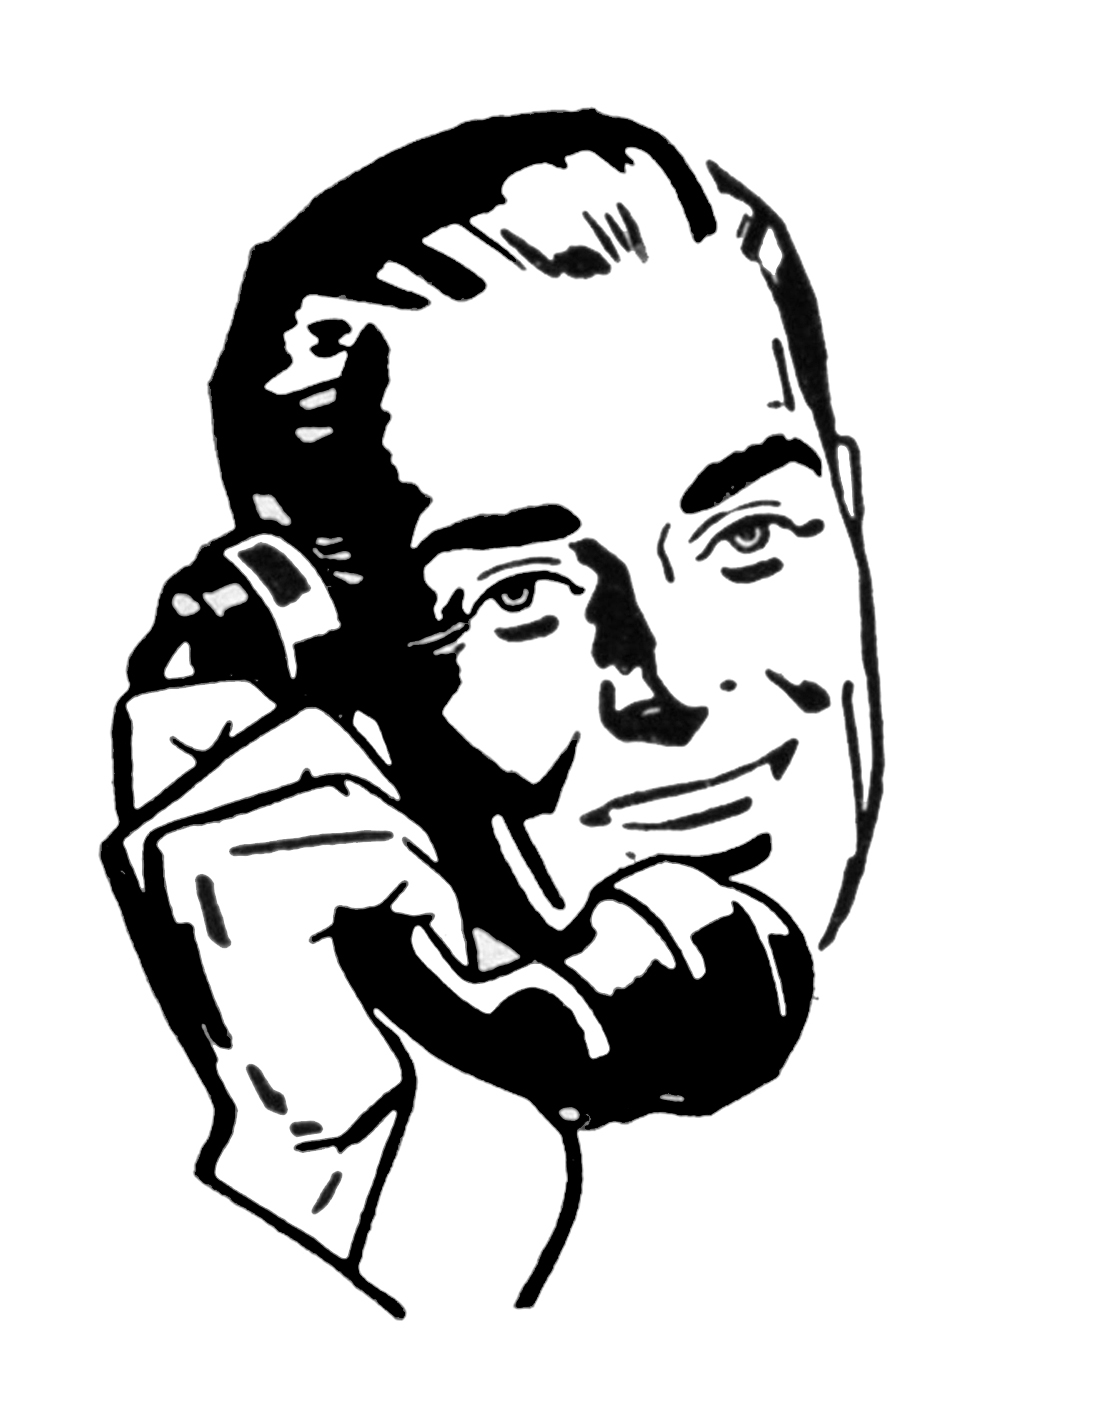 vintage telephone clipart - photo #46